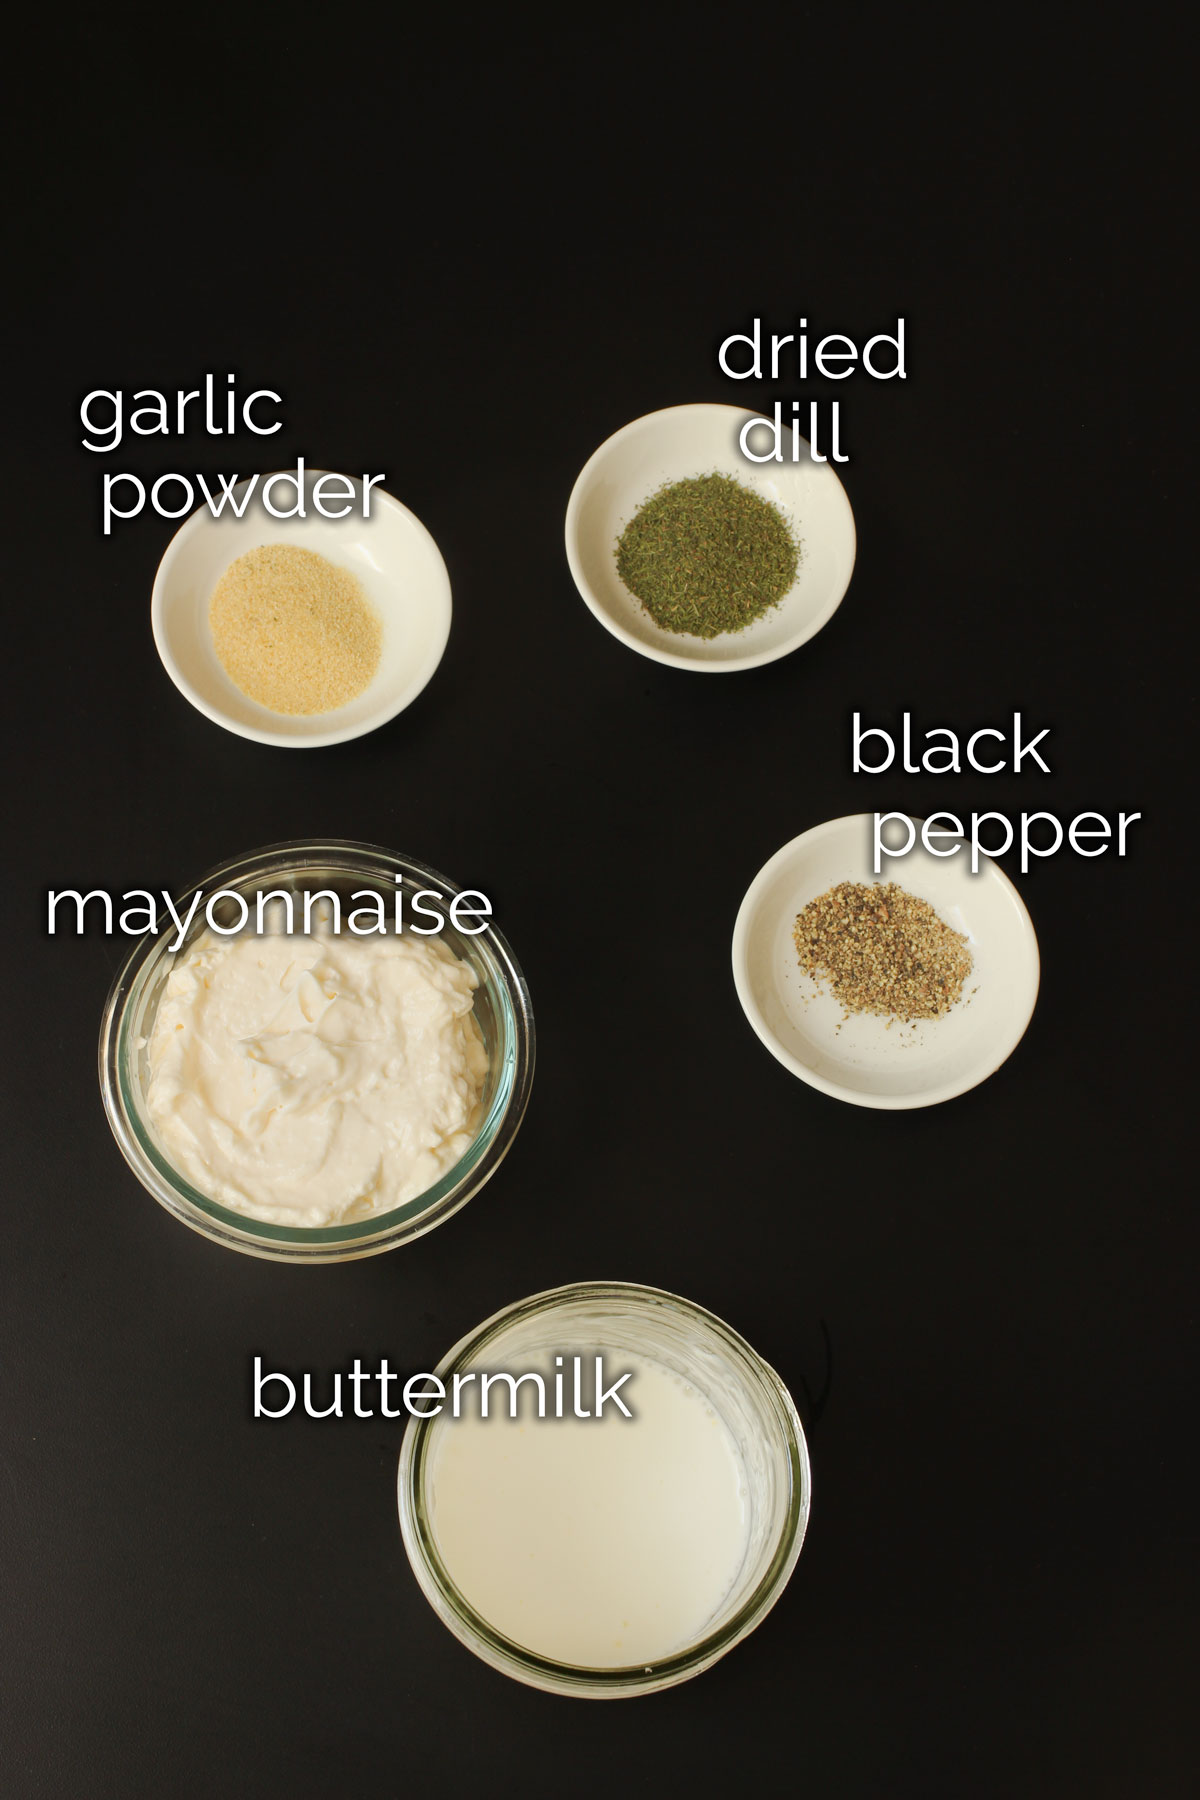 ingredients for buttermilk dressing laid out on tabletop.